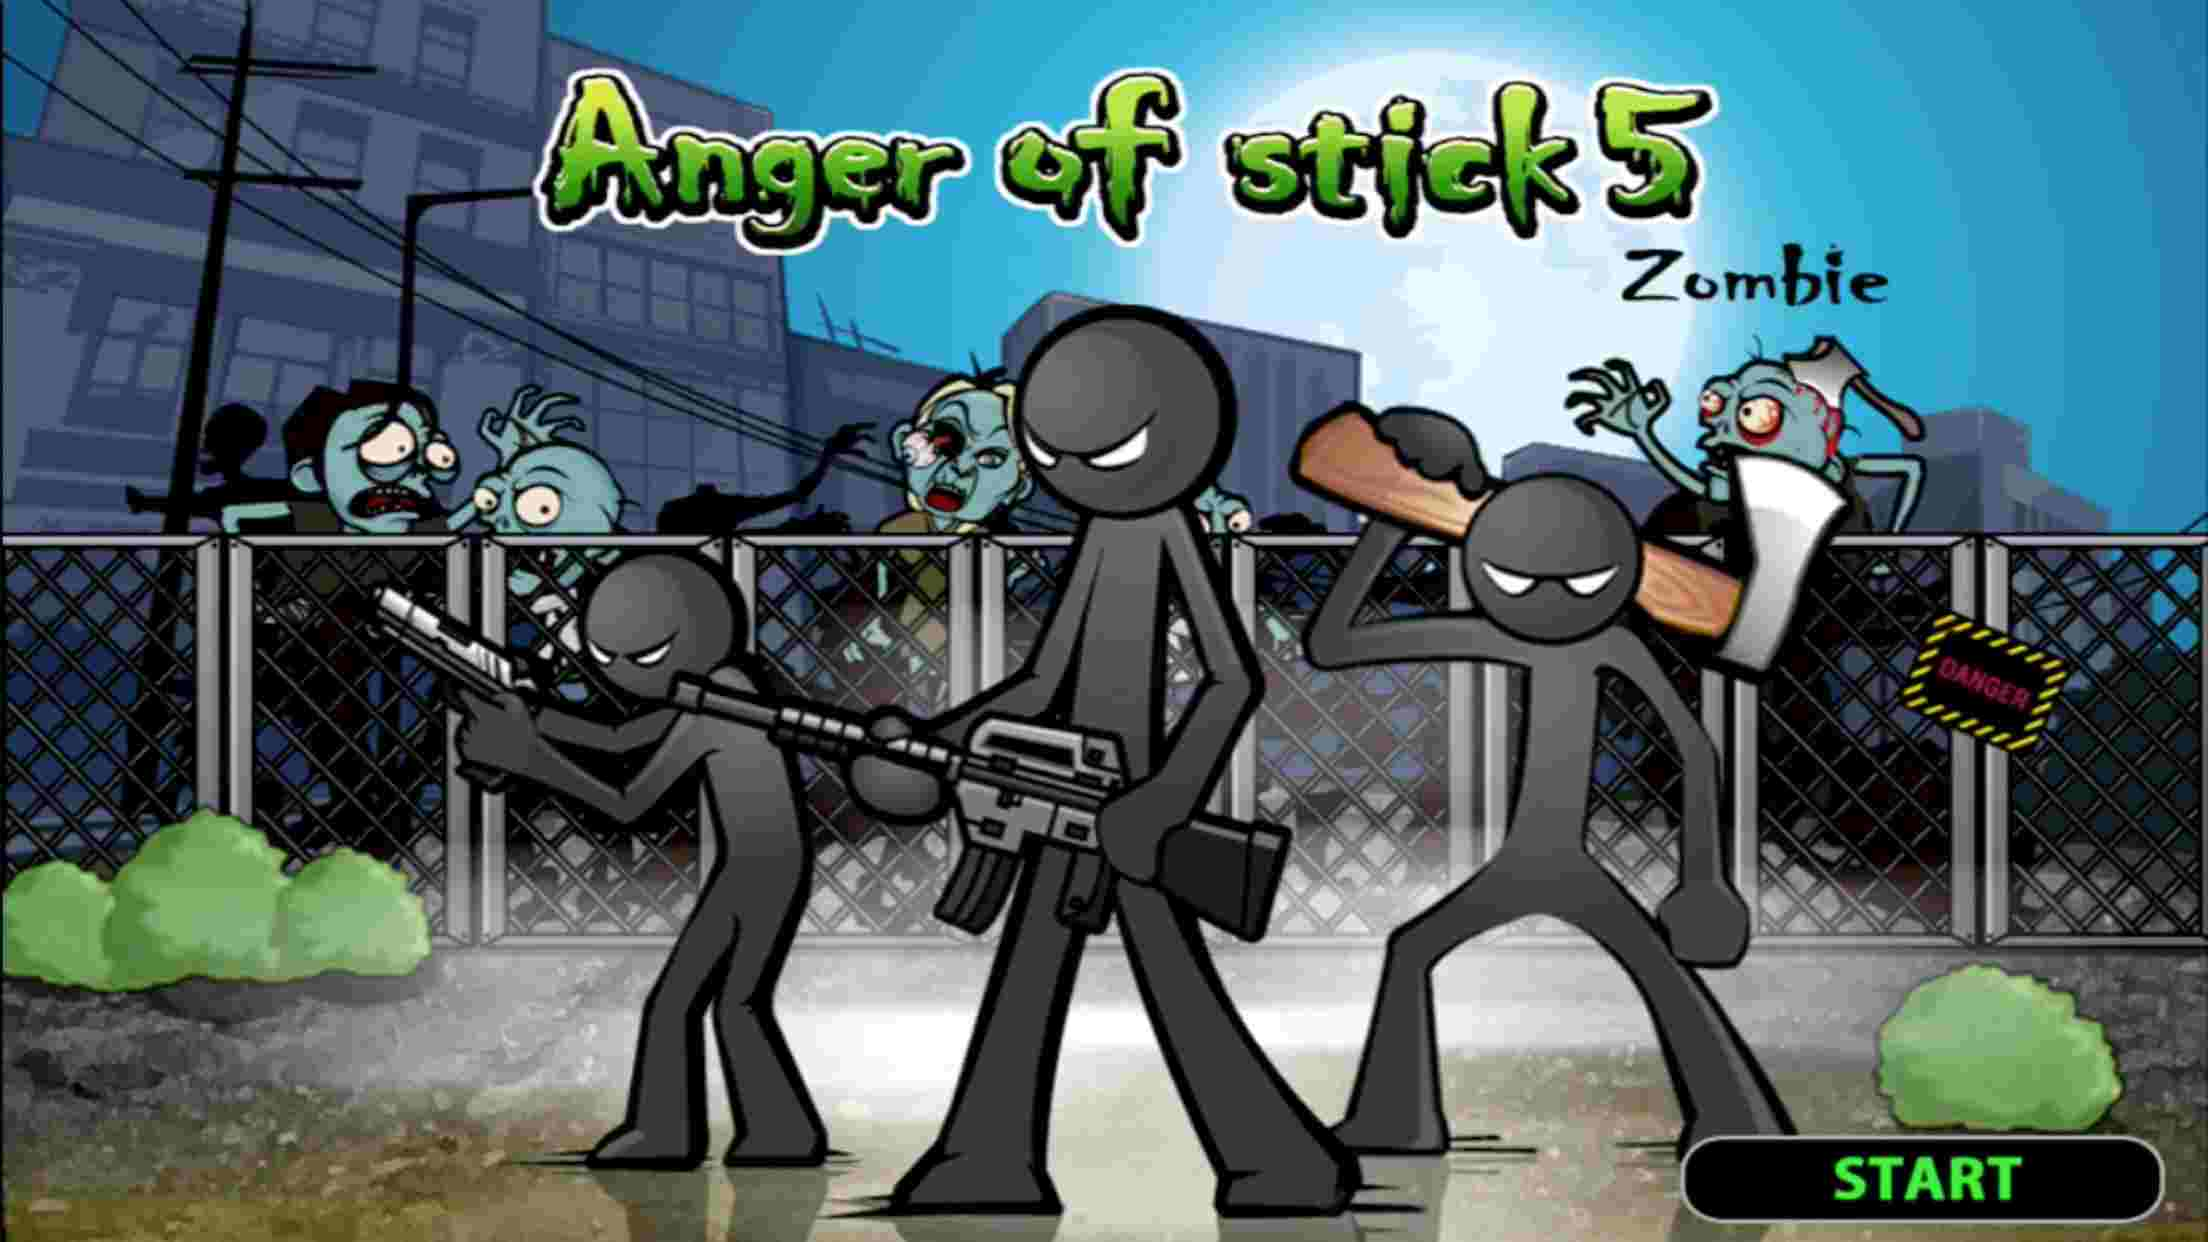 Anger of Stick 5 mod icon